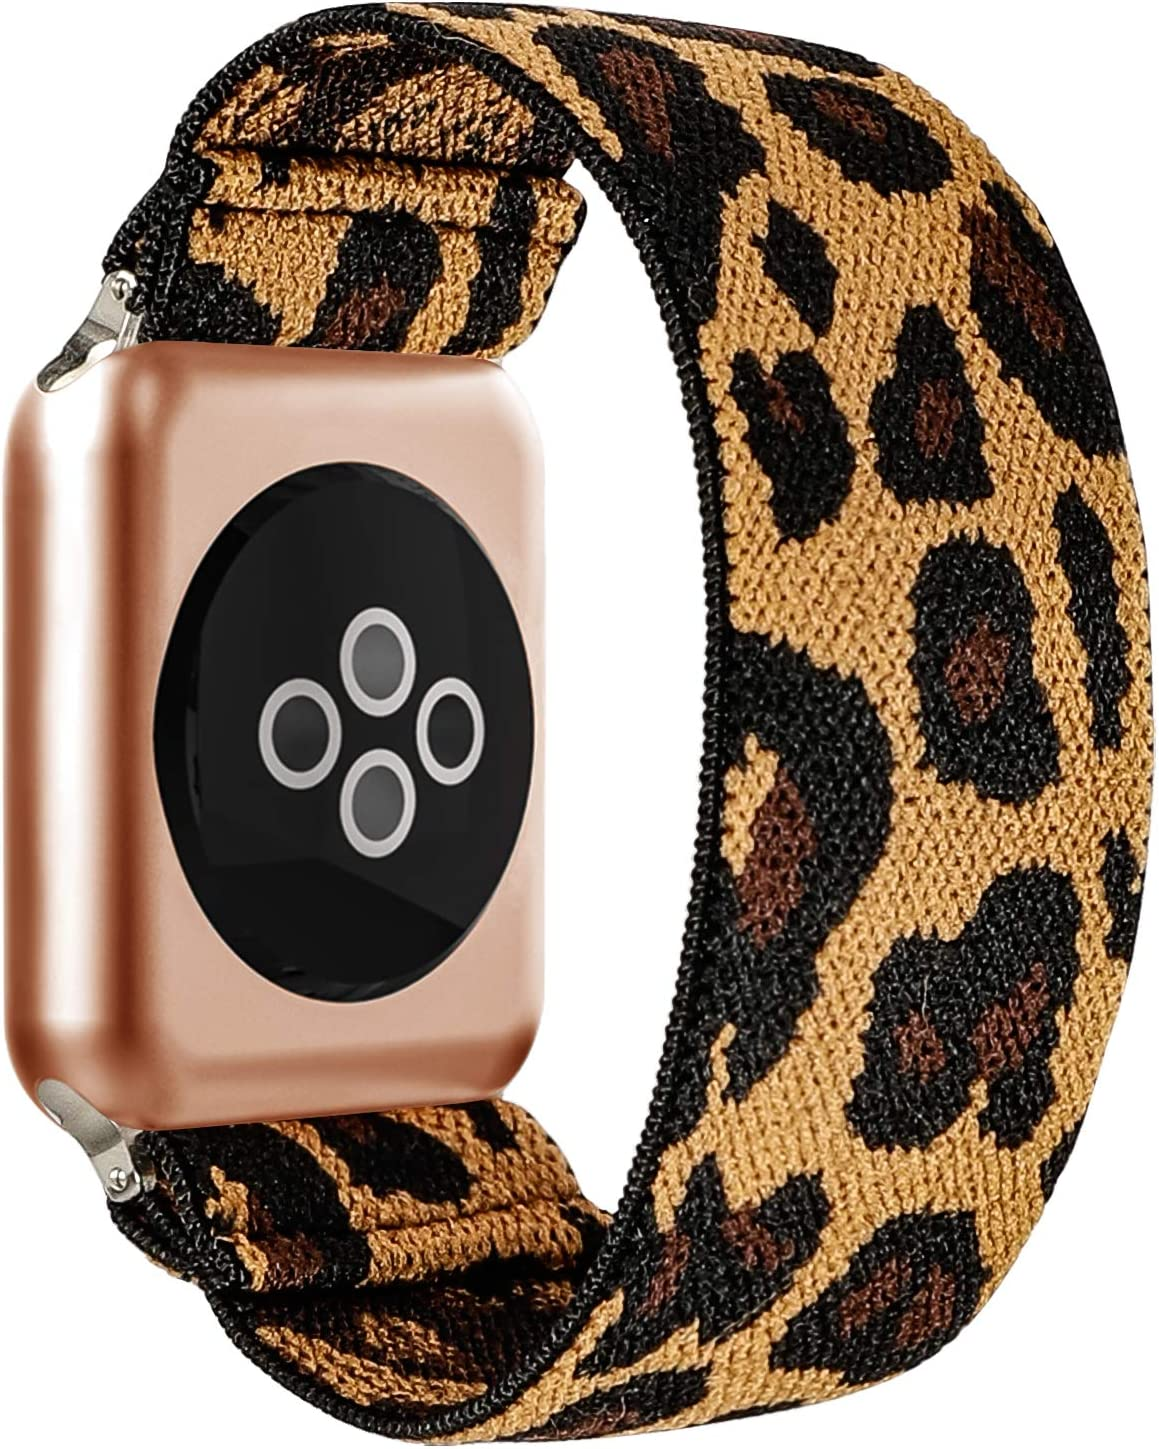 BMBEAR Stretchy Strap Loop Compatible with Apple Watch Band 38mm 40mm iWatch Series 6/5/4/3/2/1 Yellow Leopard